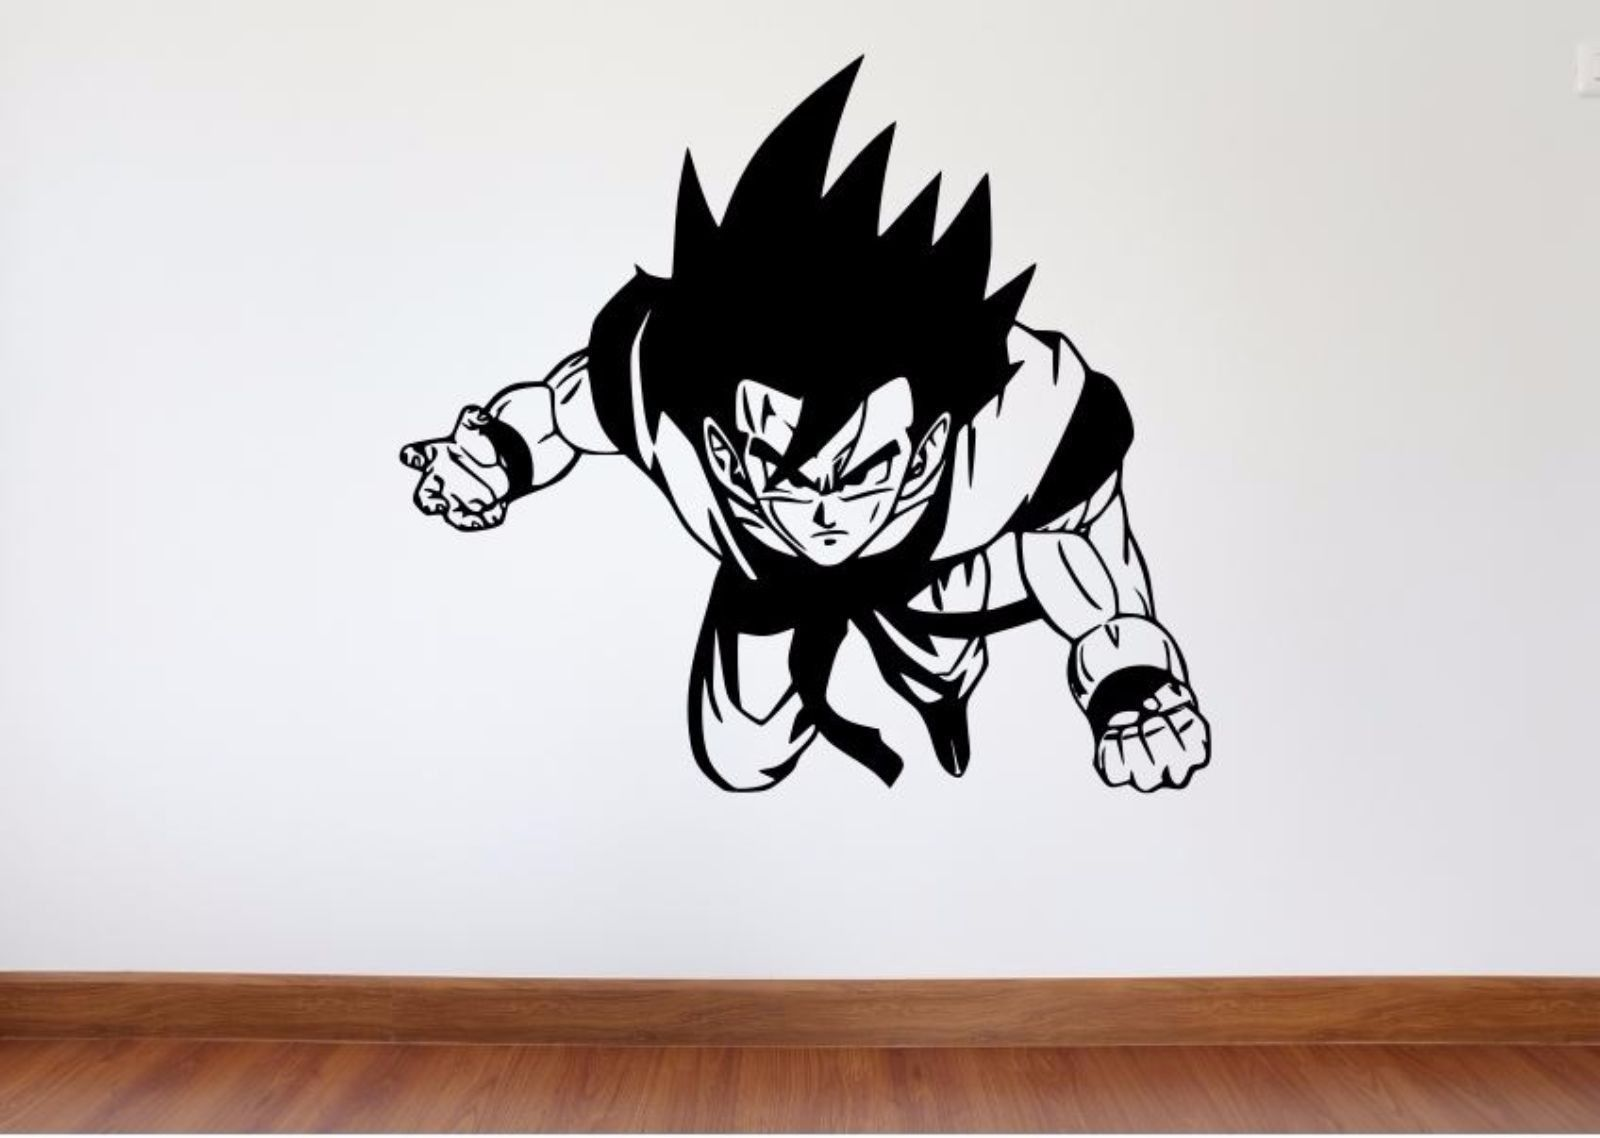 Aliexpress buy hwhd dragon ball z wall decal bedroom dbz aliexpress buy hwhd dragon ball z wall decal bedroom dbz goku removable vinyl wall decal for kids room goku wall art decals free shipping from amipublicfo Images